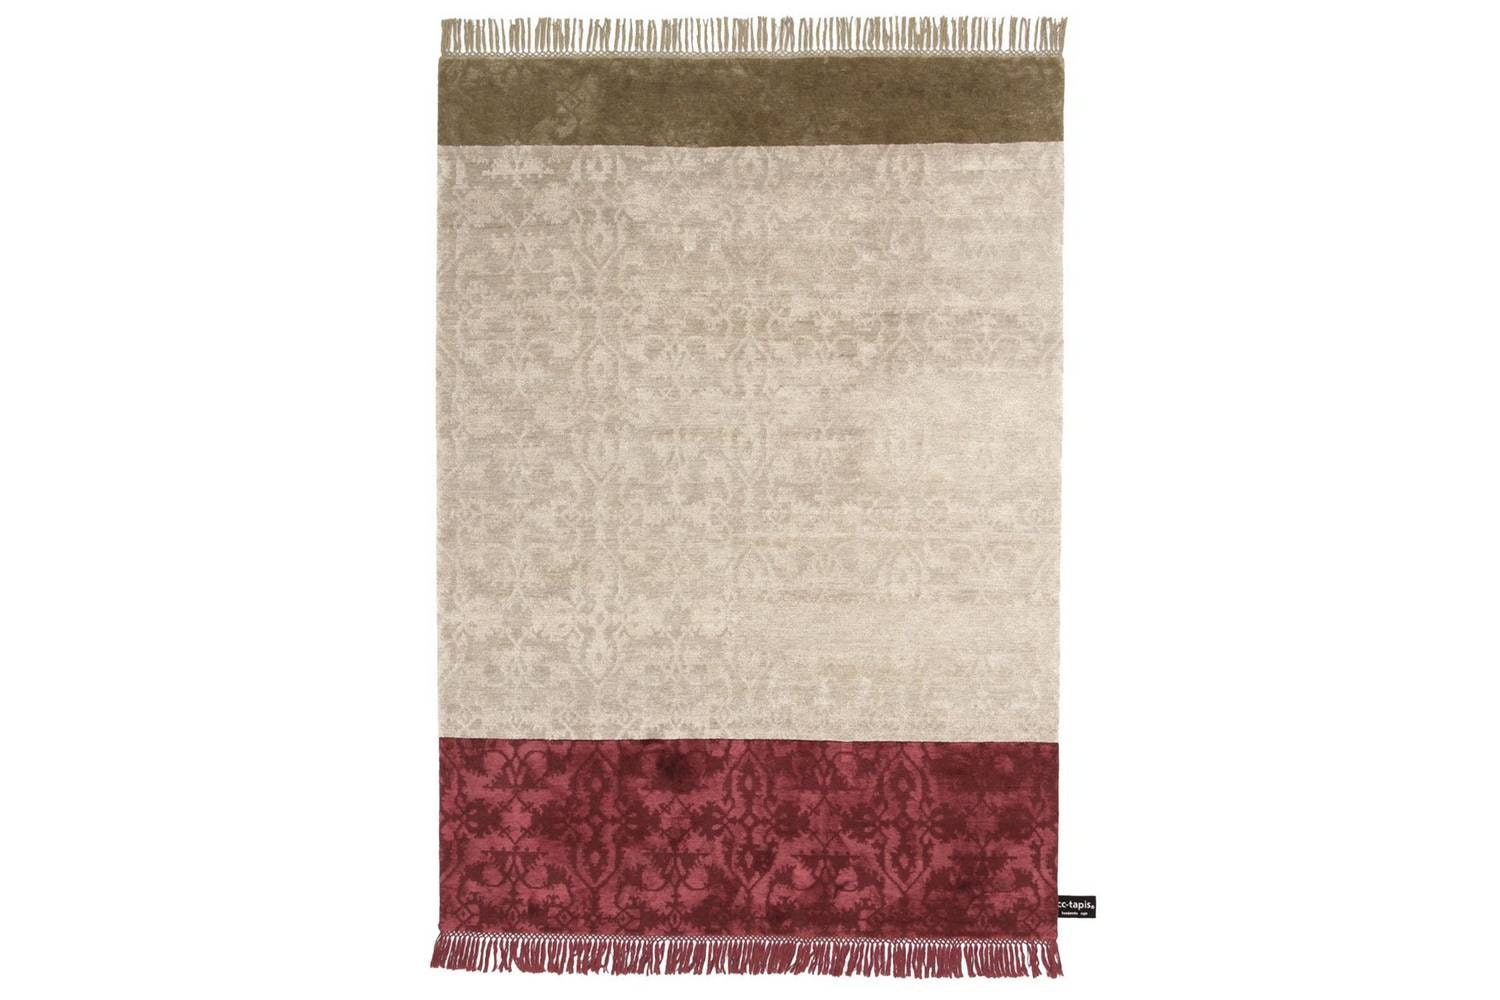 Double Dipped Lotto Rug by Dipped Collection for CC-Tapis